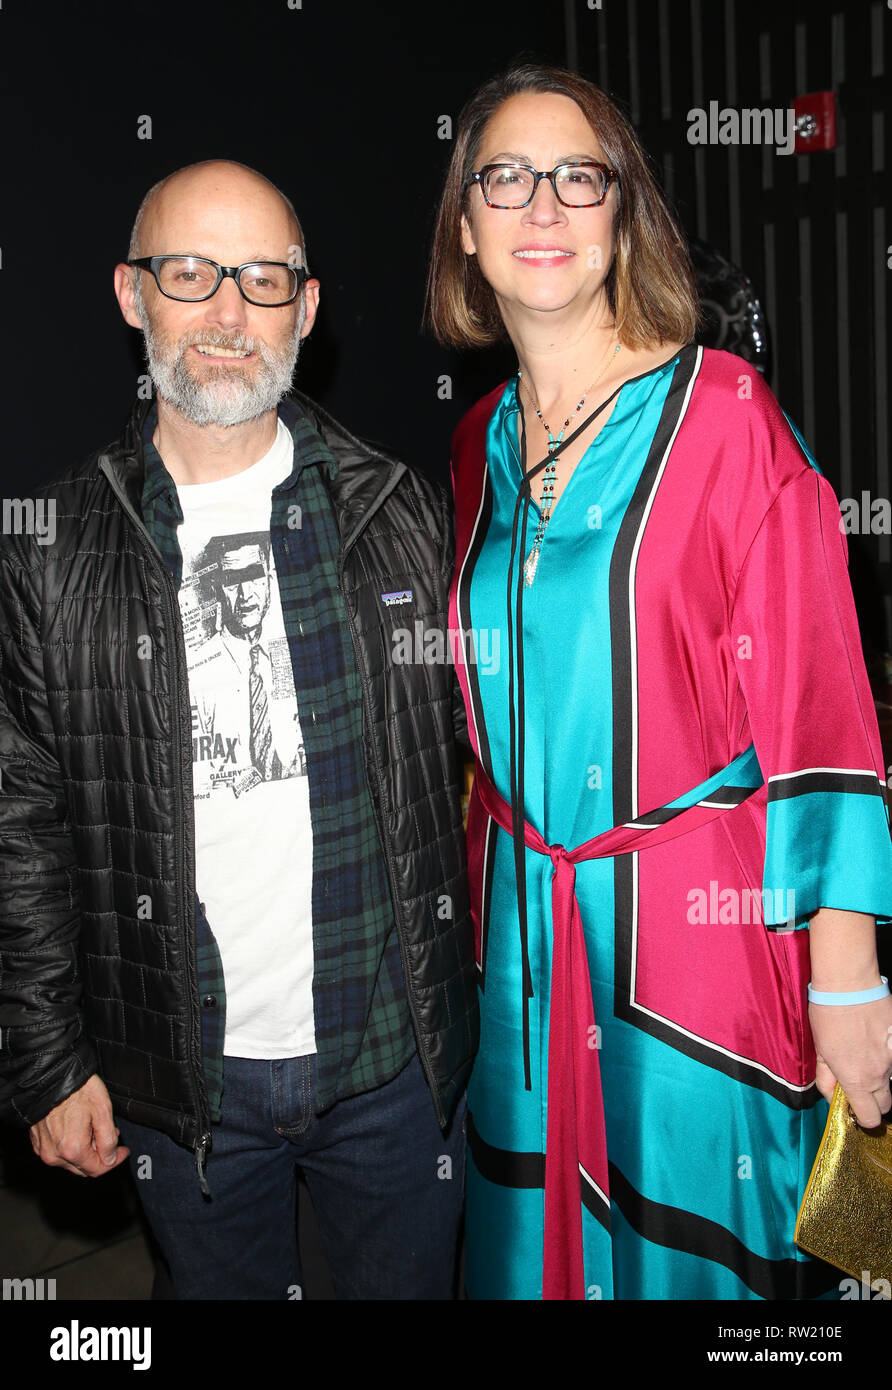 CULVER CITY, CA - MARCH 3: Moby, California State Assembly members Laura Friedman, at The Compassion Project's 2nd Annual Fundraising Gala_Inside at Playa Studio in Culver City, California on March 3, 2019. Credit: Faye Sadou/MediaPunch - Stock Image